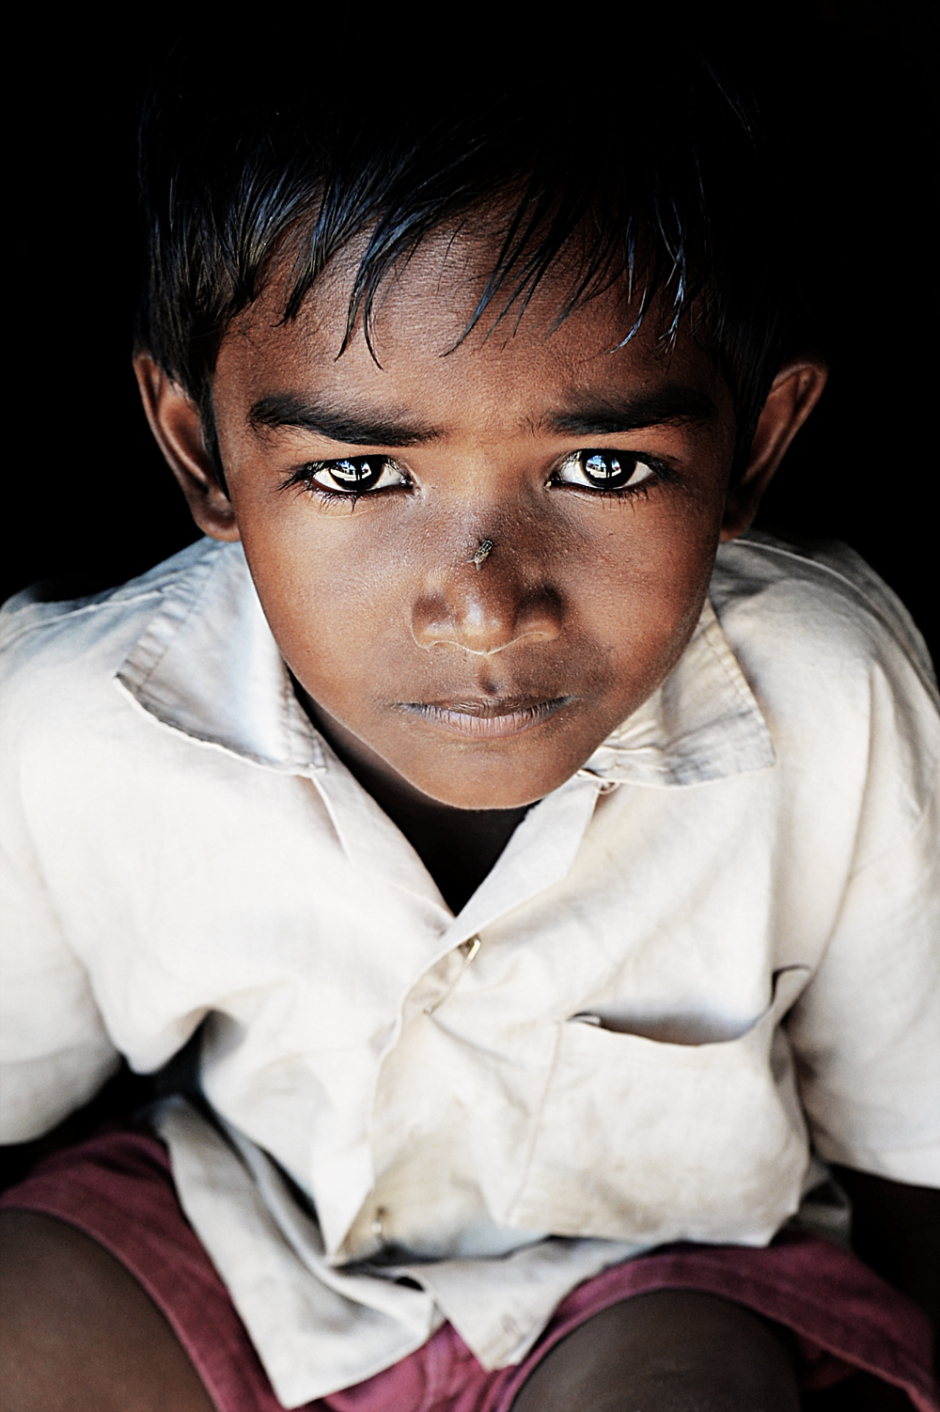 Photographed this little boy near to my house , Chennai,India